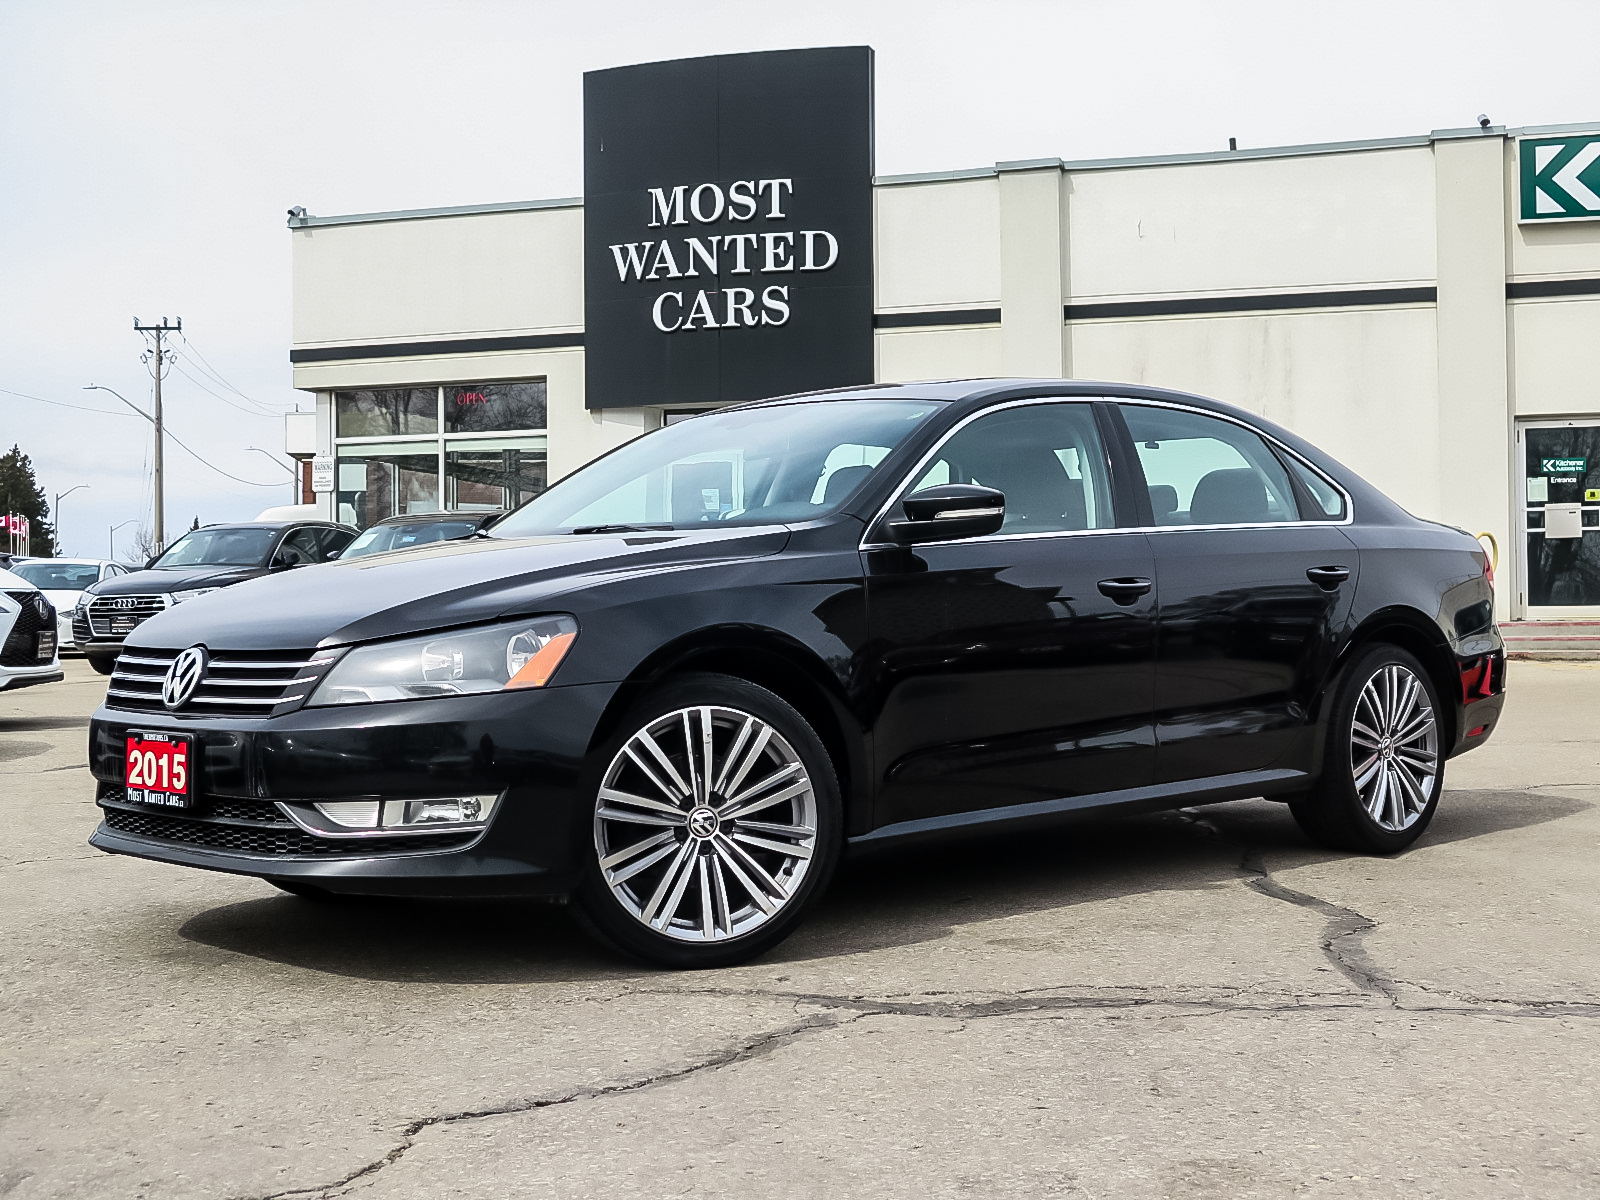 used 2015 Volkswagen Passat car, priced at $12,492